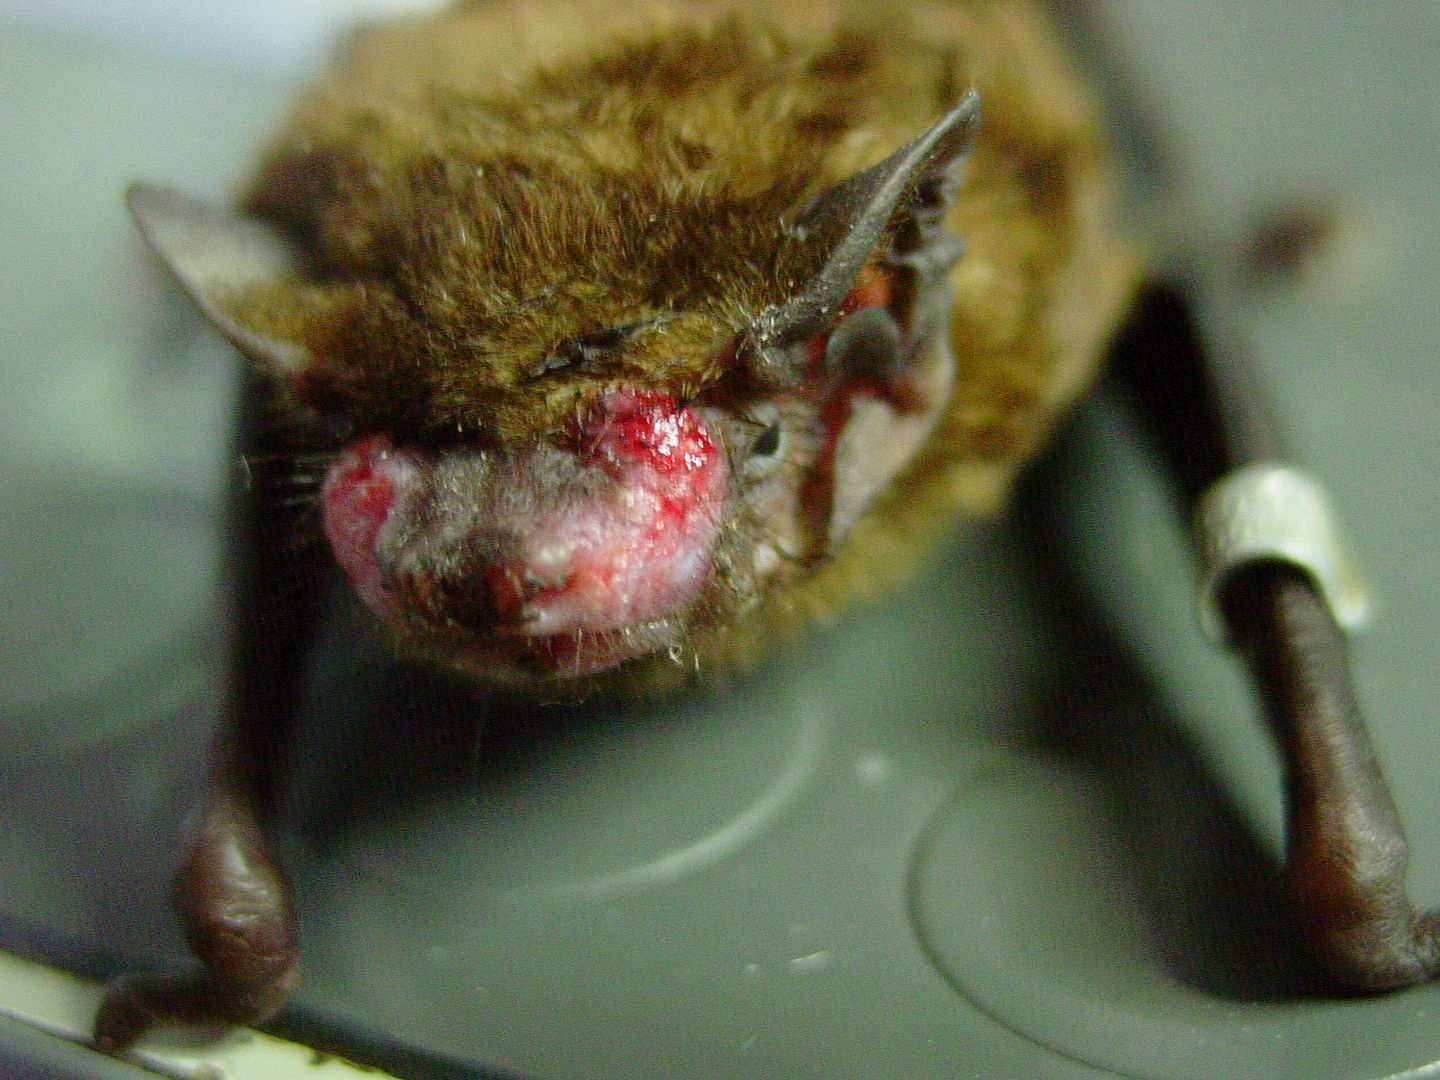 DAs Foto zeigt eine Gesichtsverletzung bei einem Großen Abendsegler nach Baumfällung / the photo shows a nyctalus noctula with a face injury after tree felling